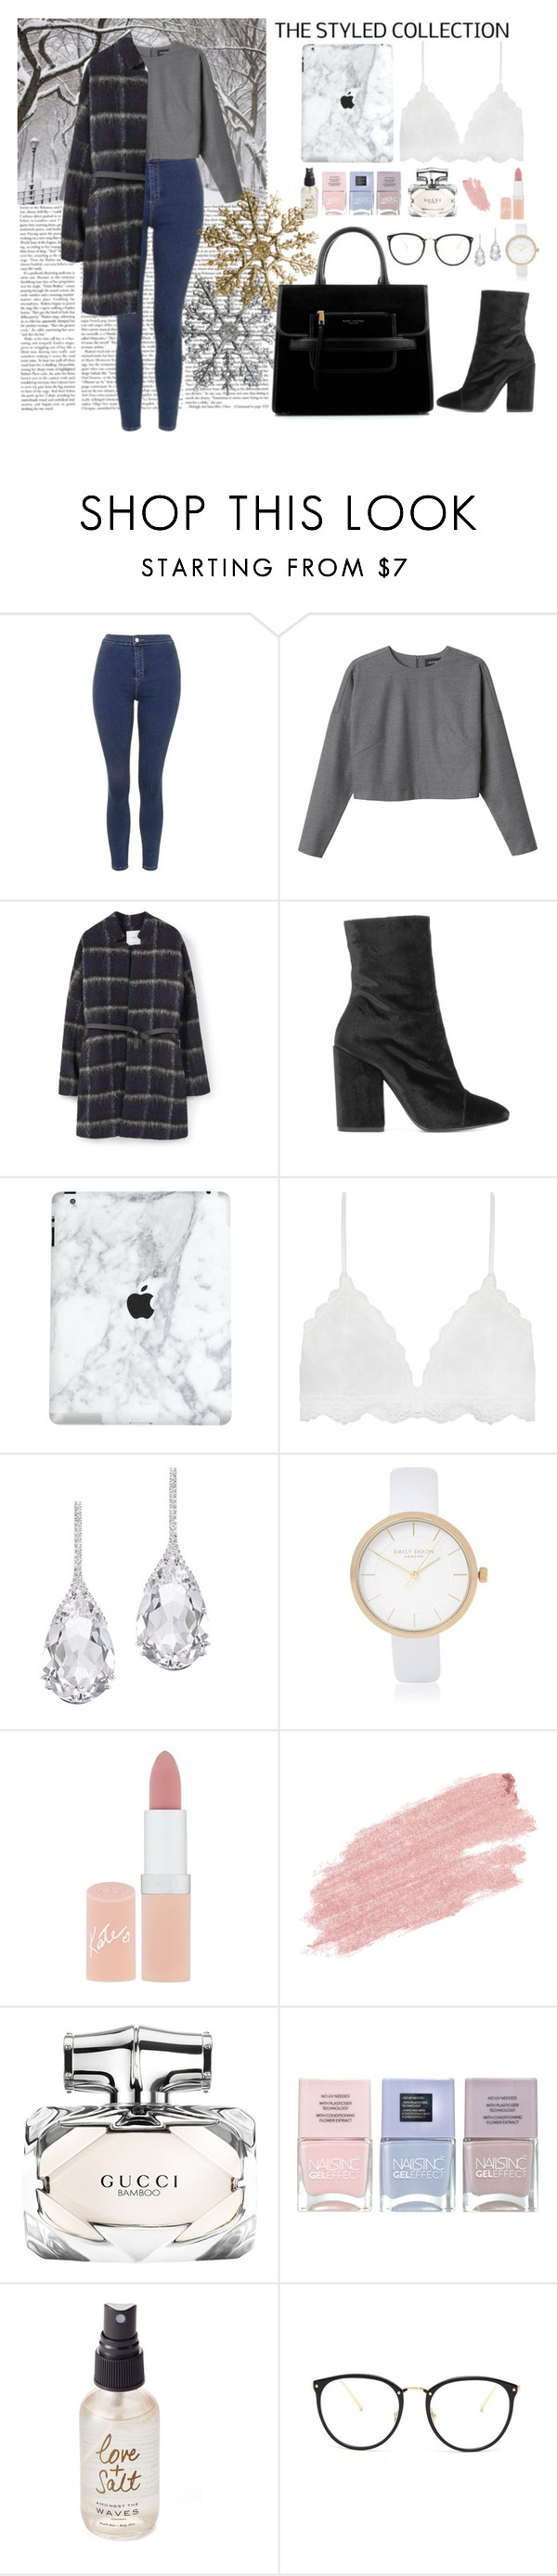 """""""Untitled #63"""" by meredithwelch ❤ liked on Polyvore featuring Topshop, Monki, MANGO, Dries Van Noten, Serendipity, Plukka, River Island, Rimmel, Jane Iredale and Gucci"""